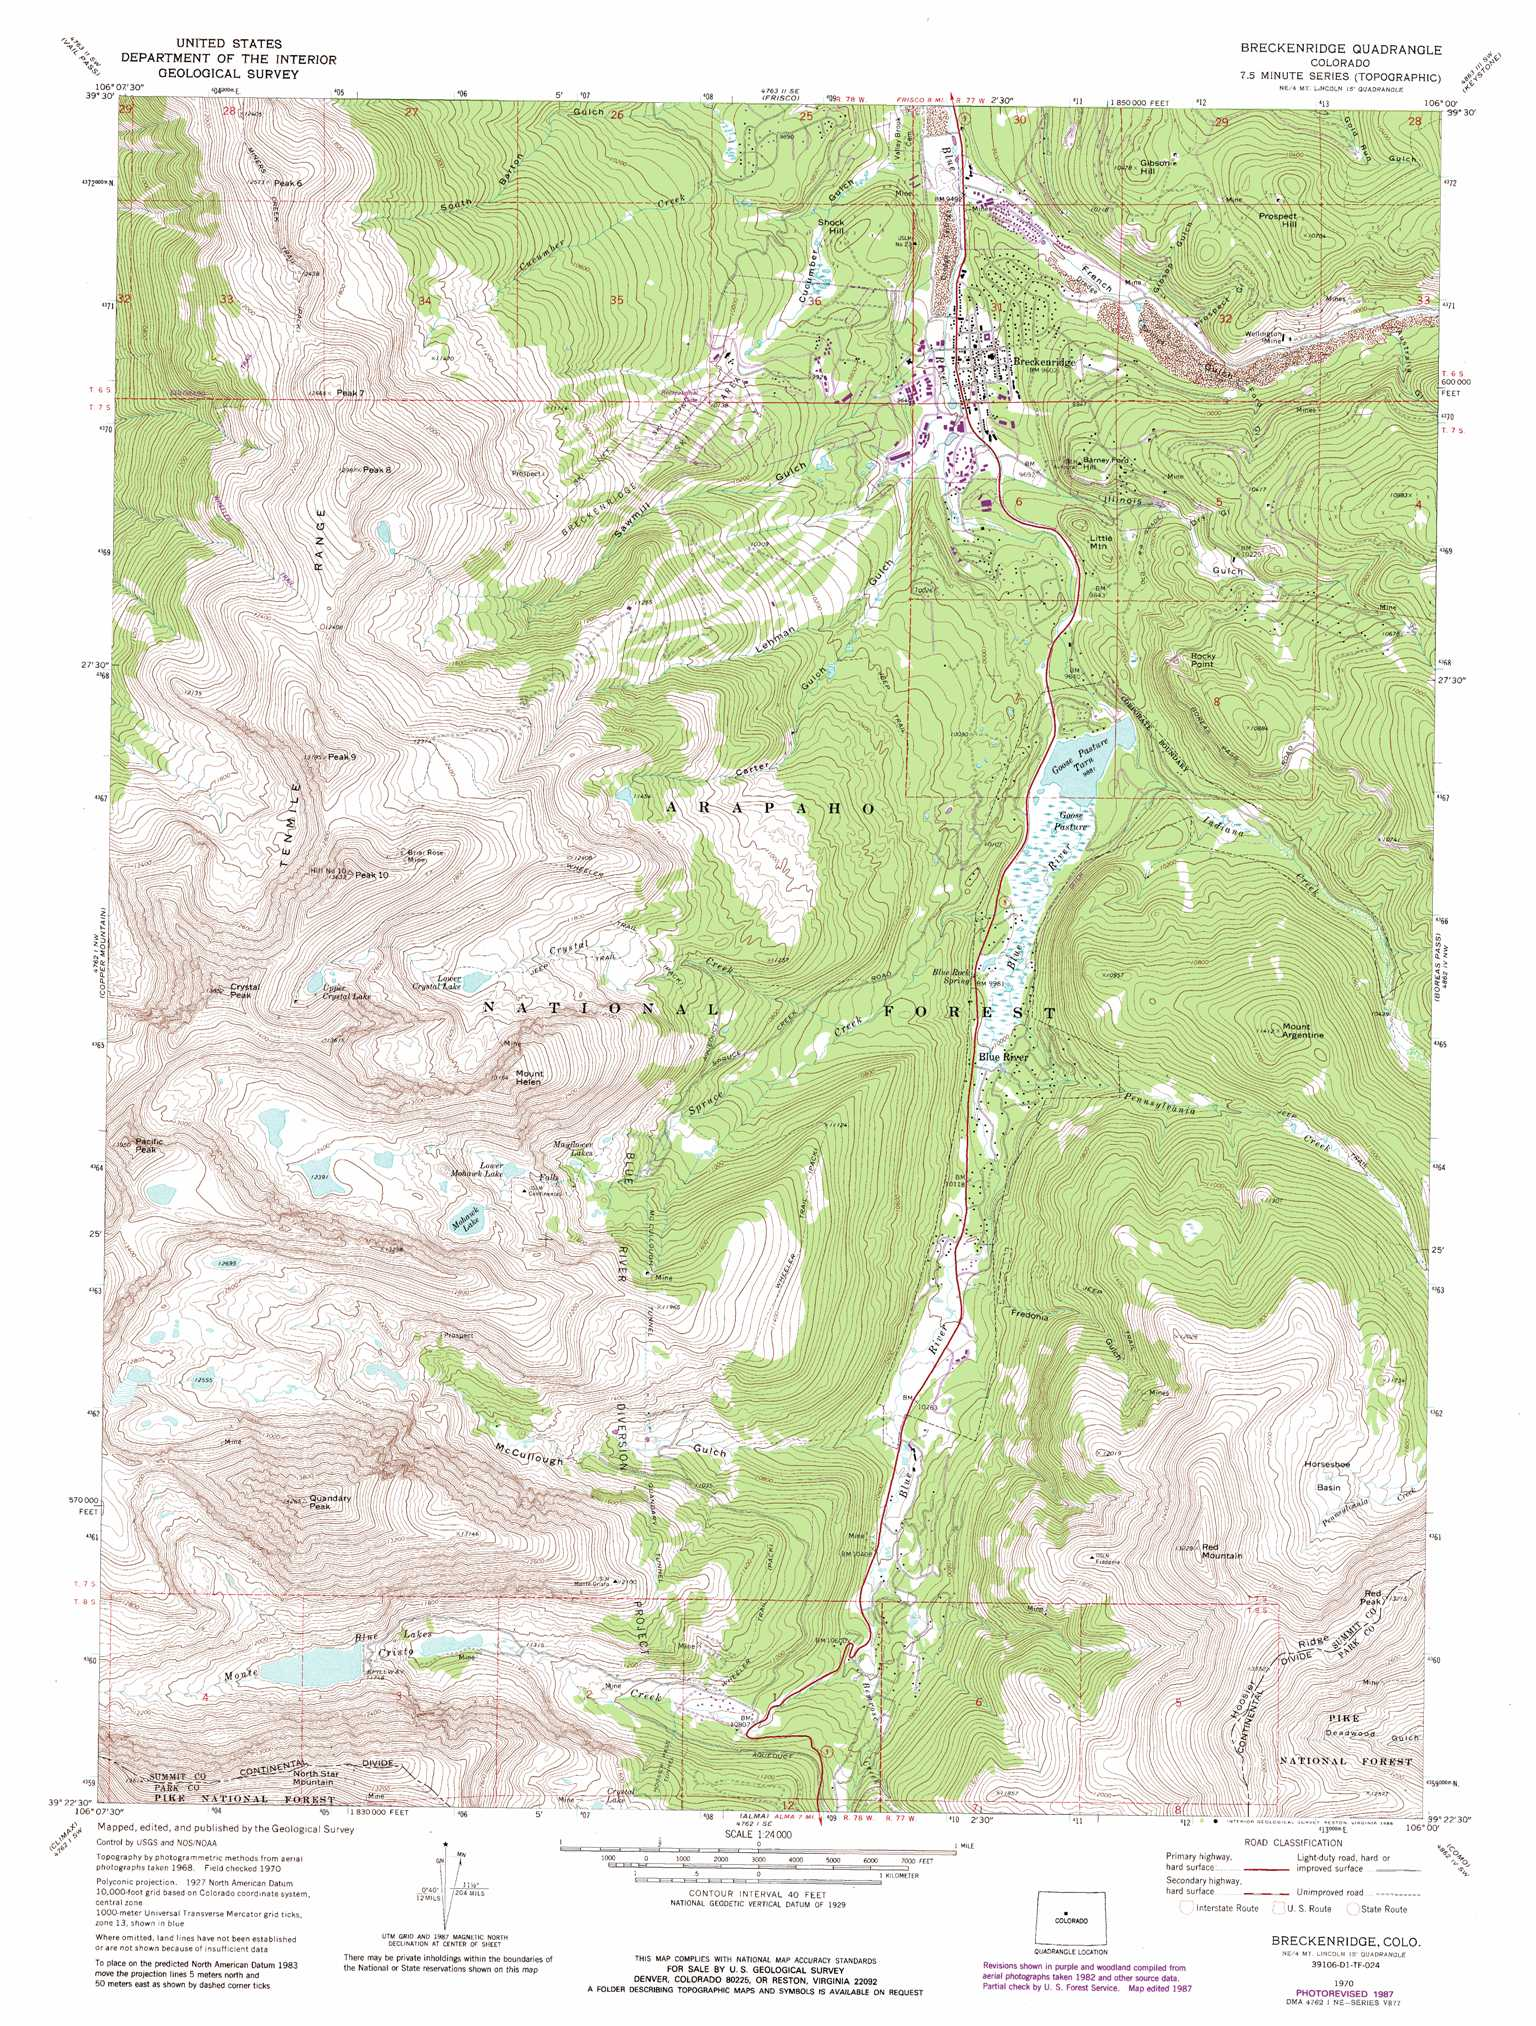 Breckenridge topographic map, CO - USGS Topo Quad 39106d1